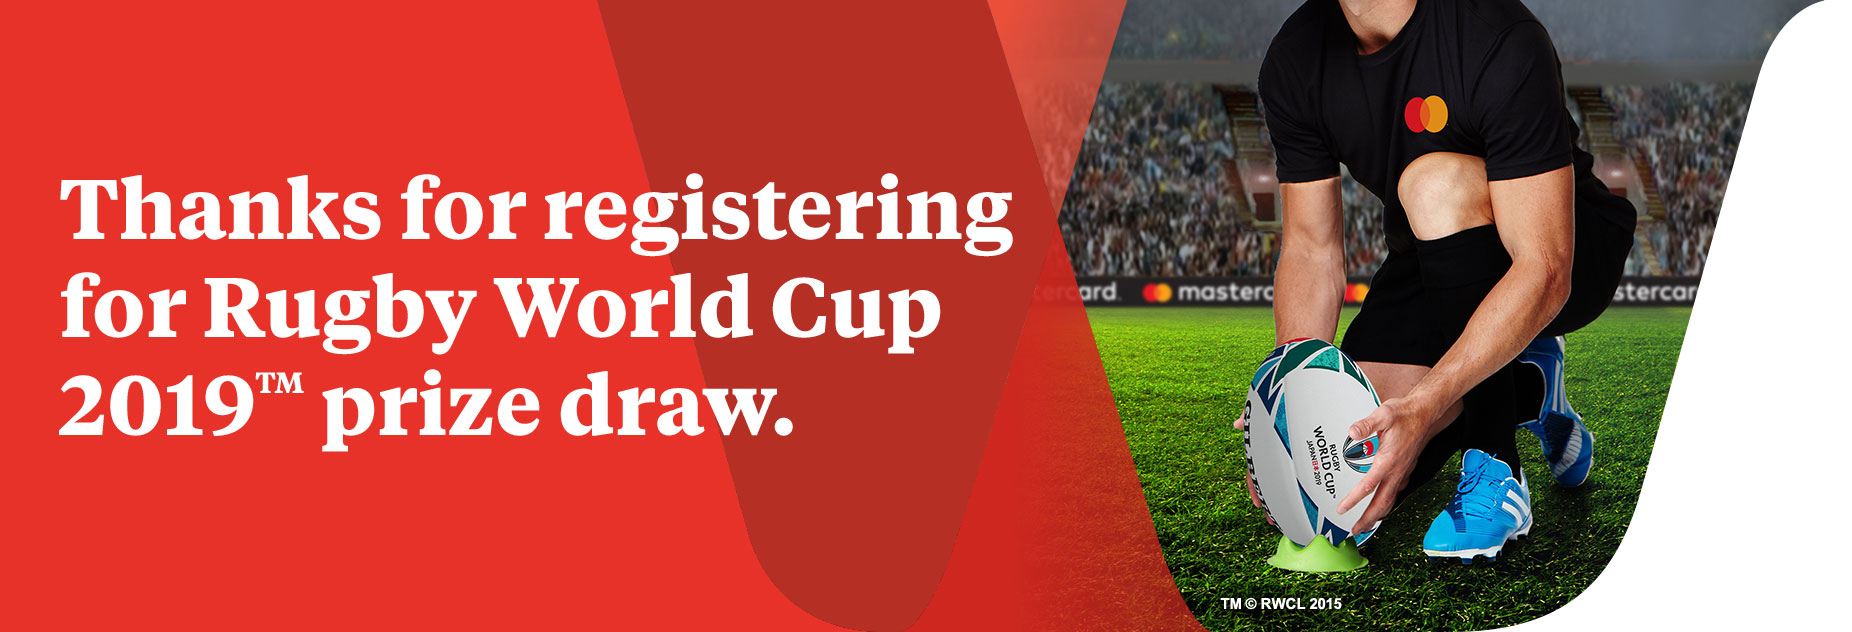 Thanks for registering for Rugby World Cup 2019 prize draw